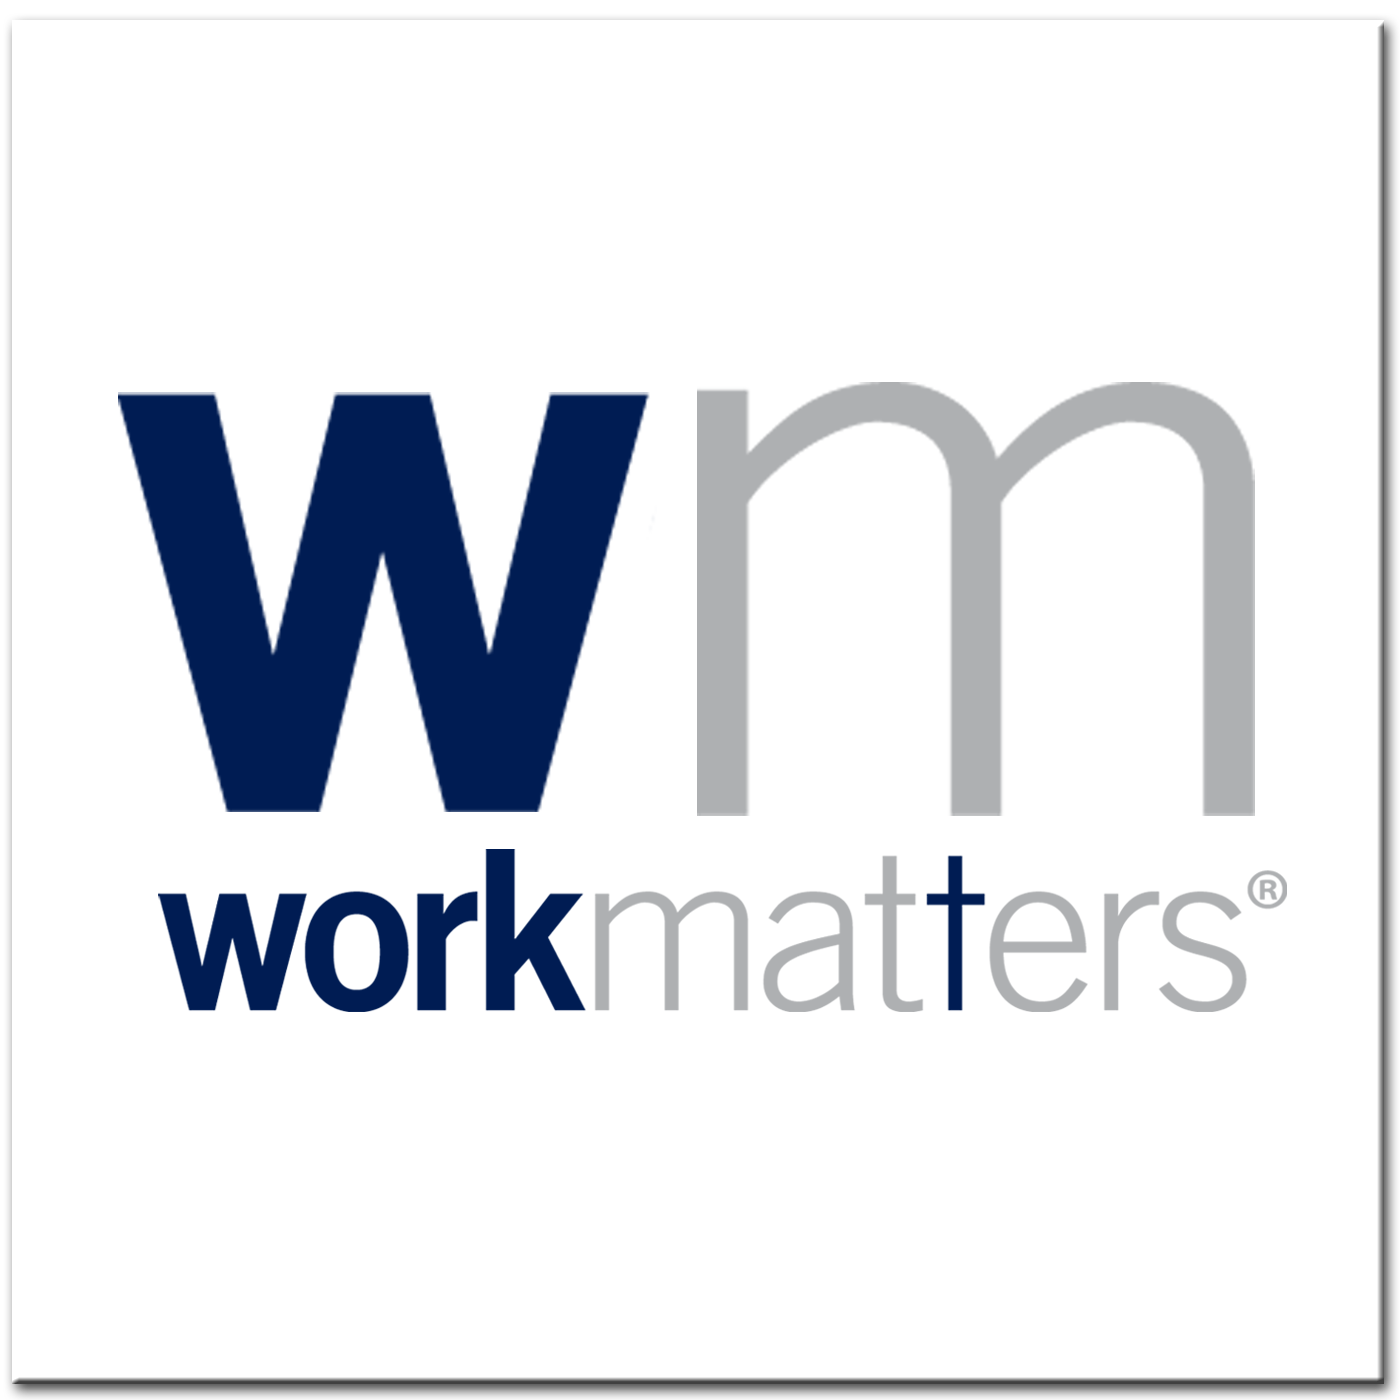 workmatters logo.png